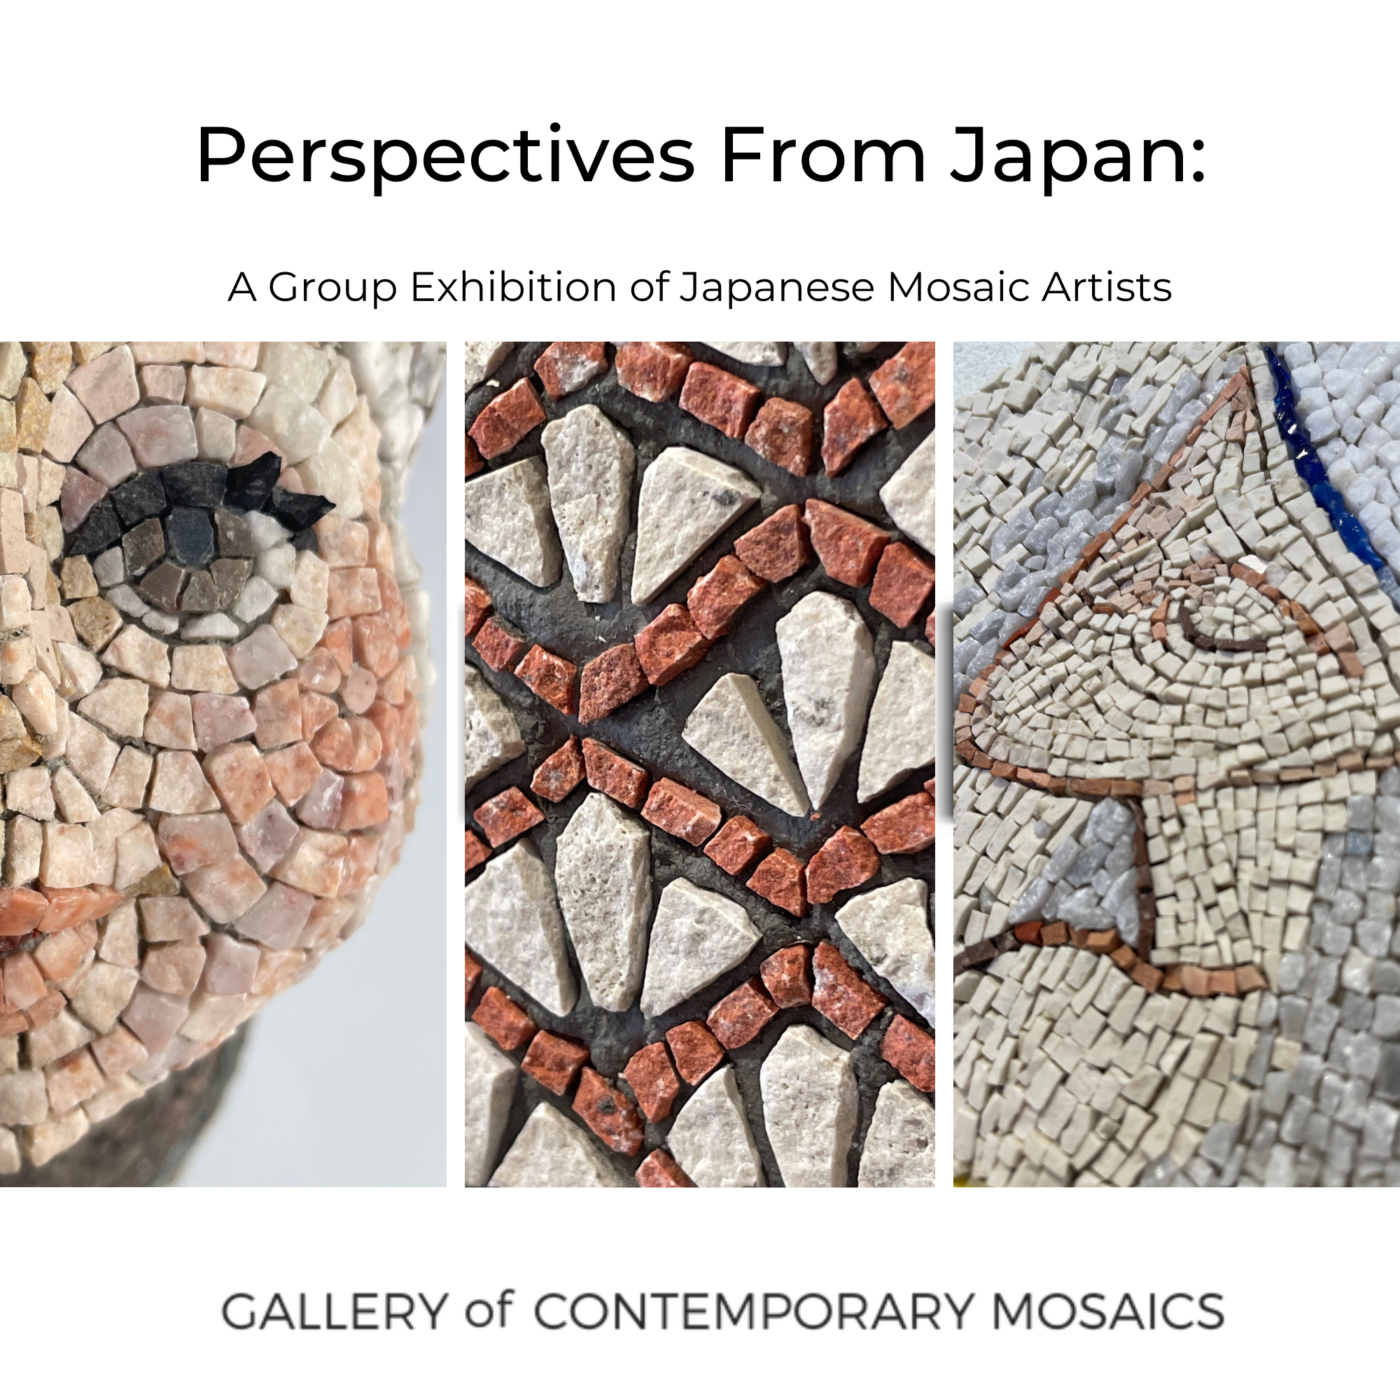 Perspectives From Japan Catalogue